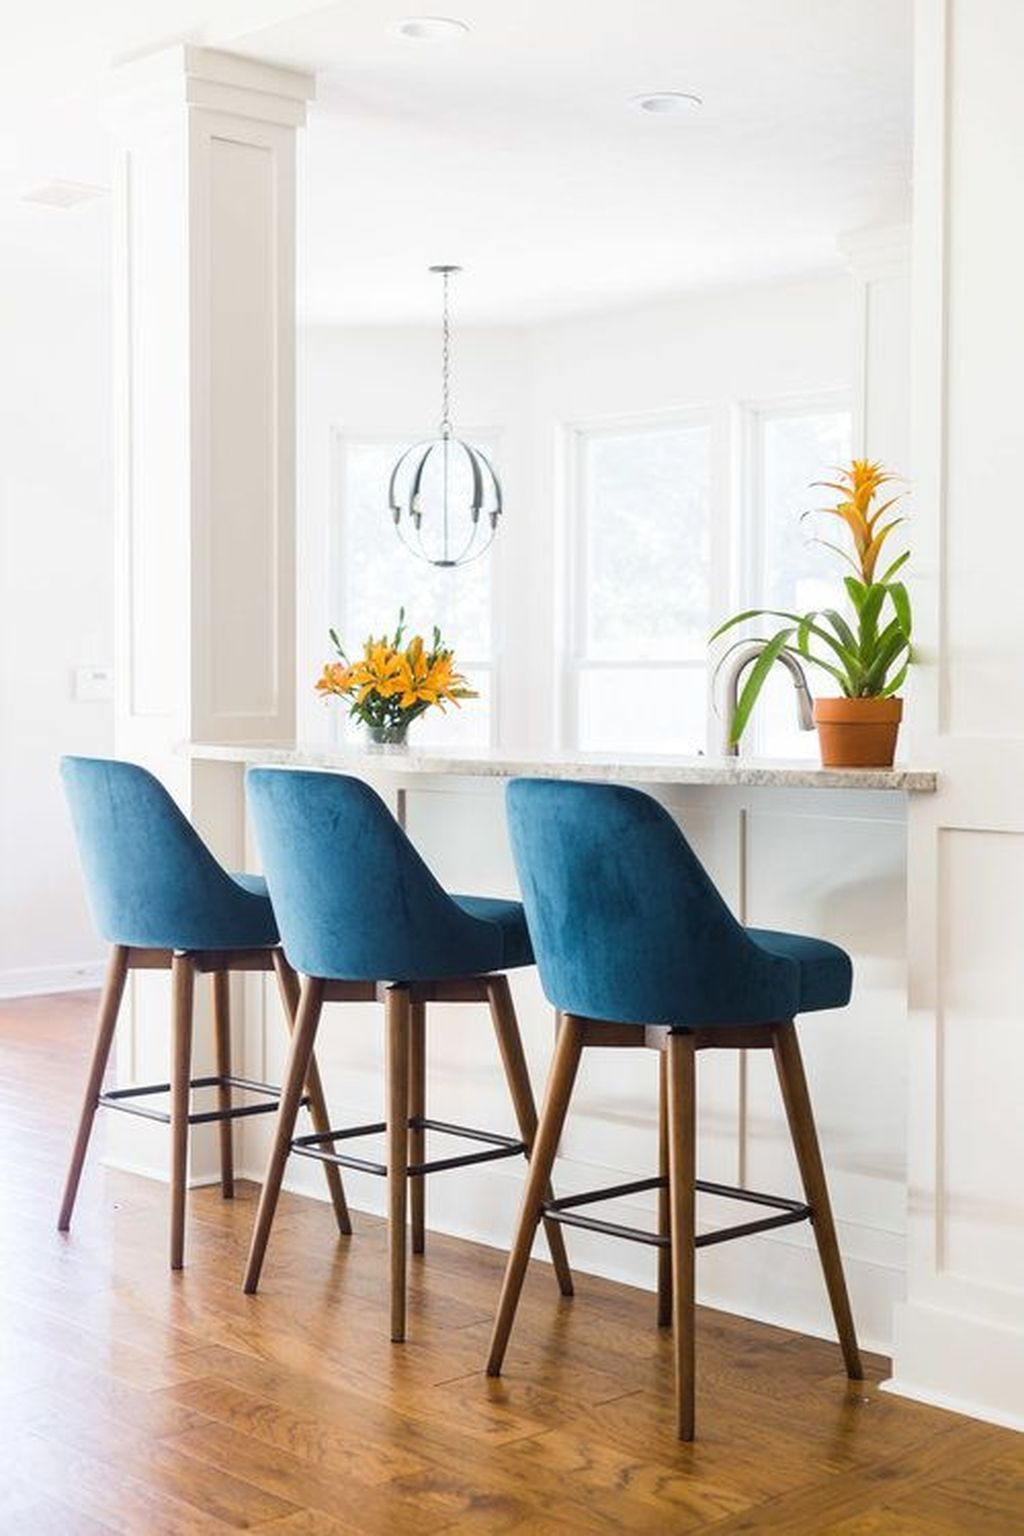 37 Cool Mid Century Decorating Ideas For Kitchen Home Bar Decor Kitchen Stools Modern Bar Stools